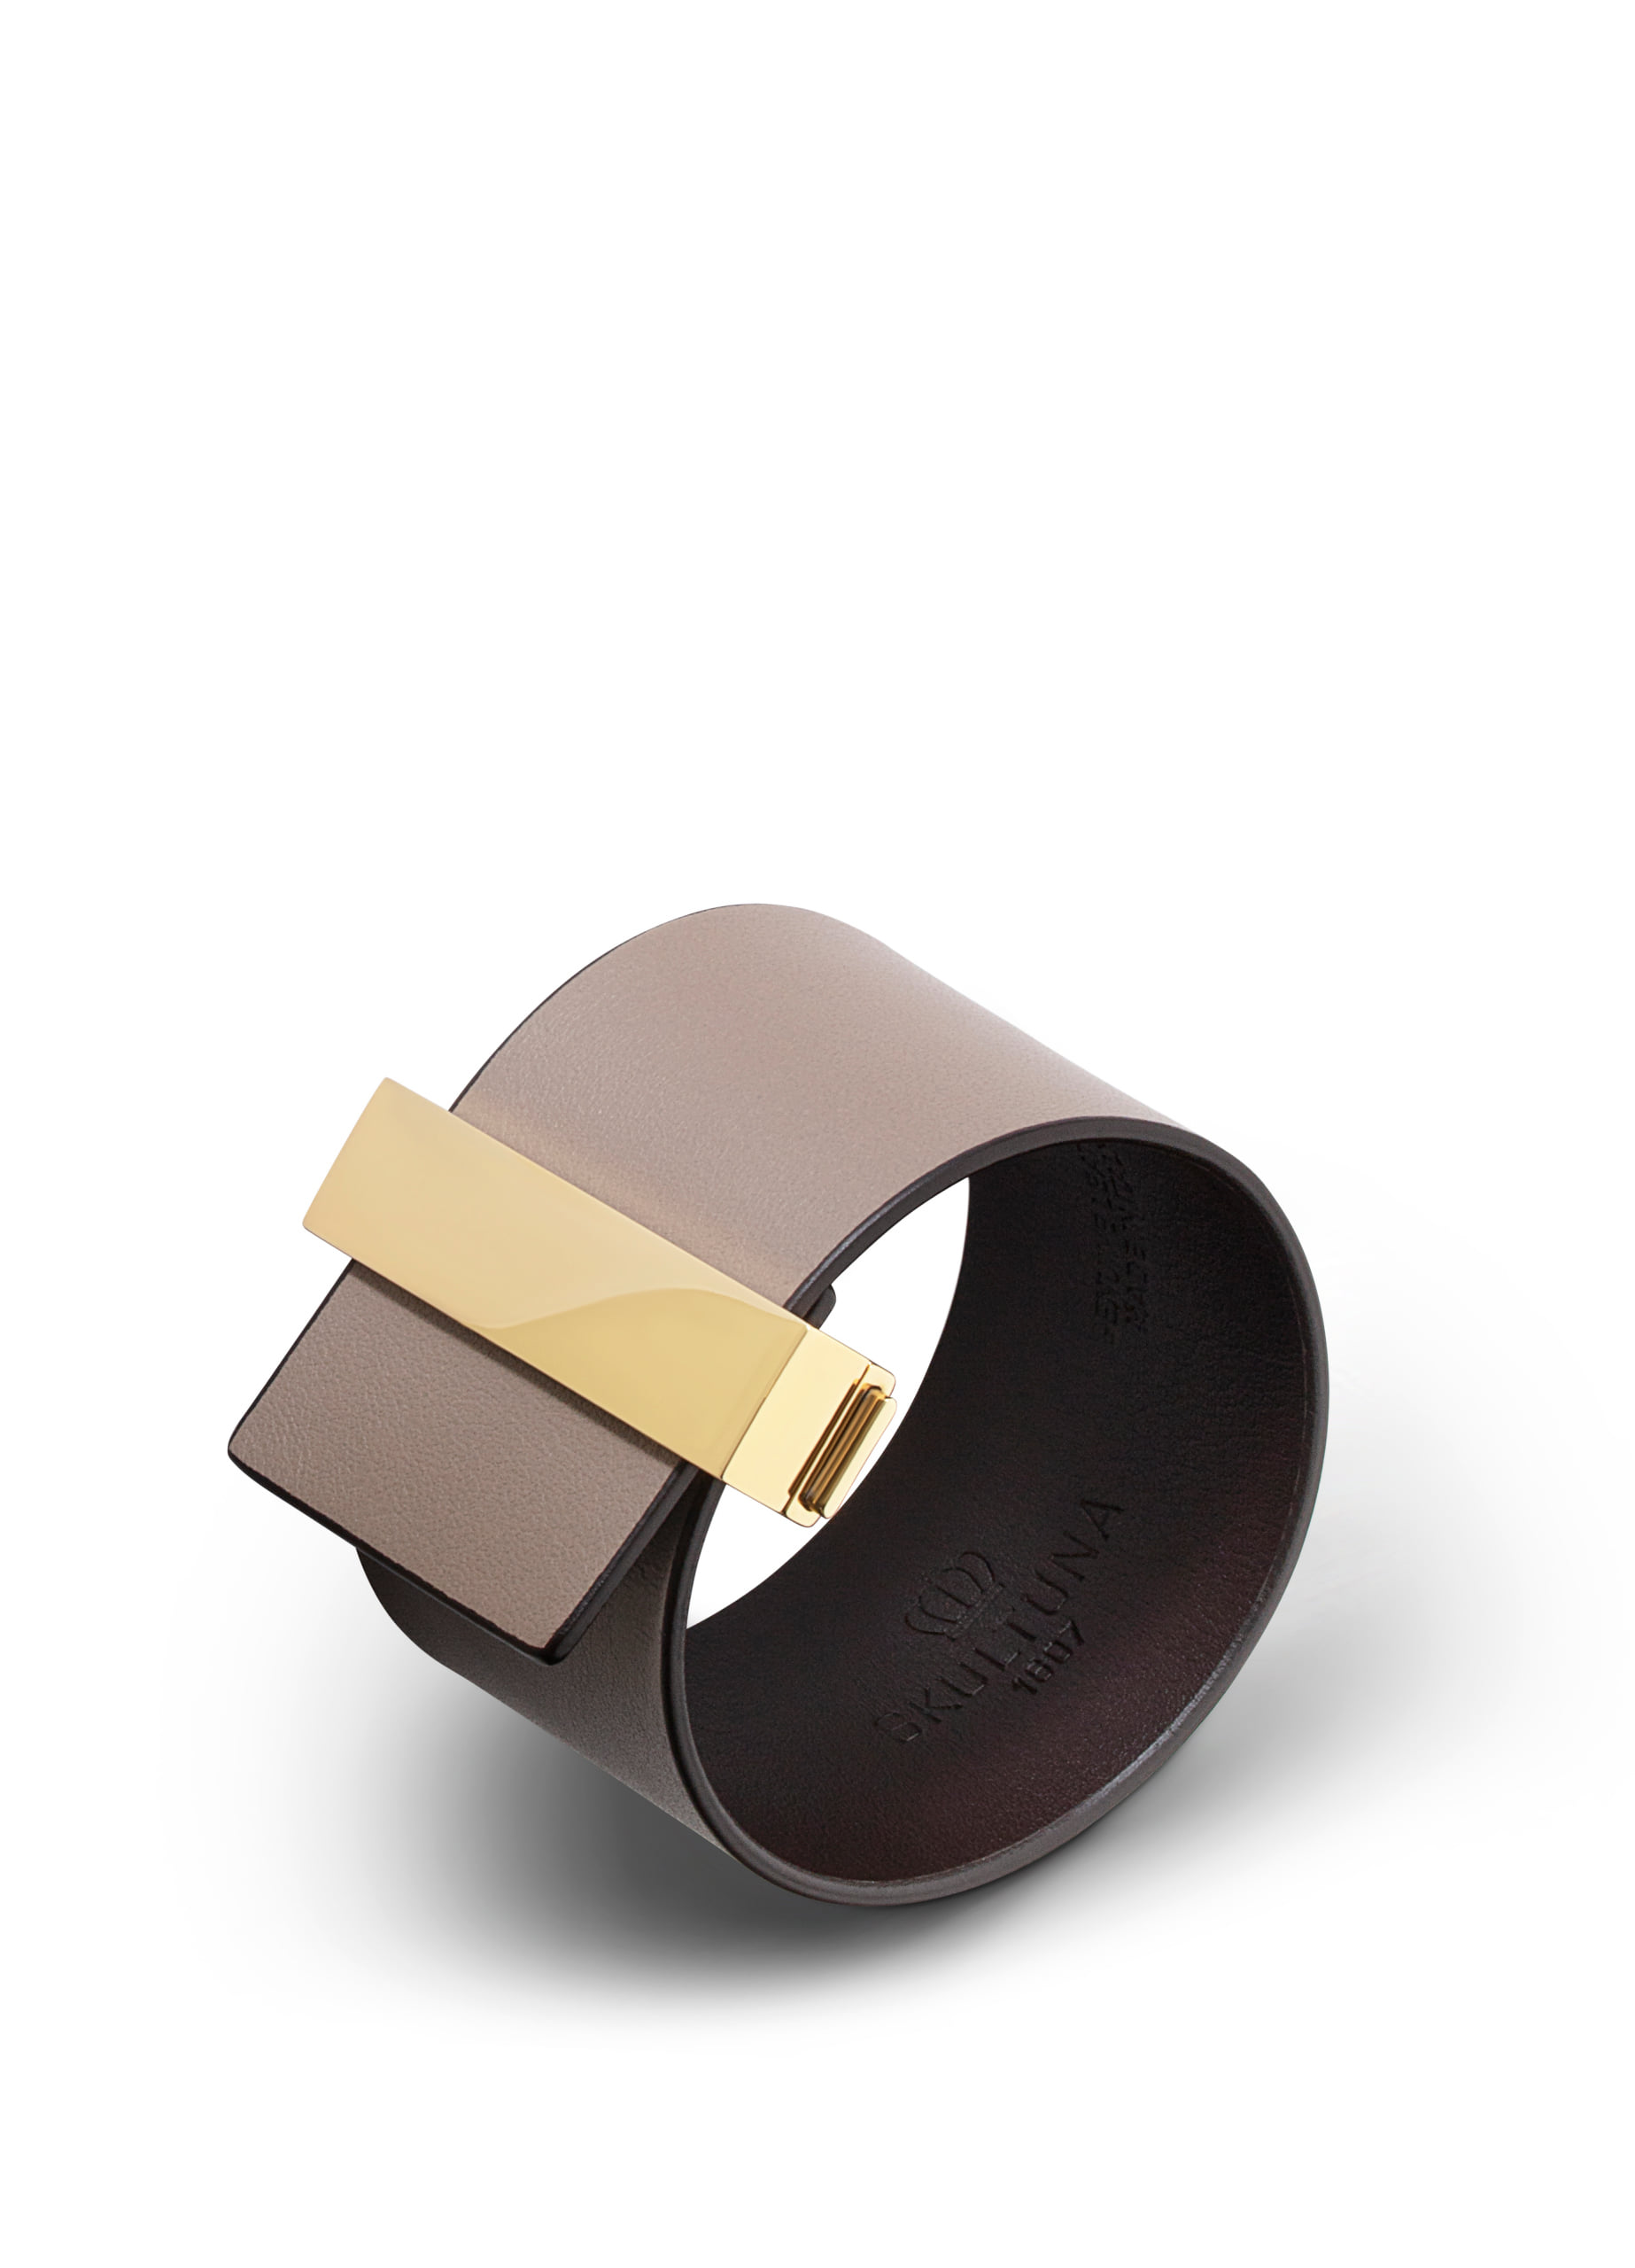 Wide leather bracelet with lock - Grey brown with gold plated